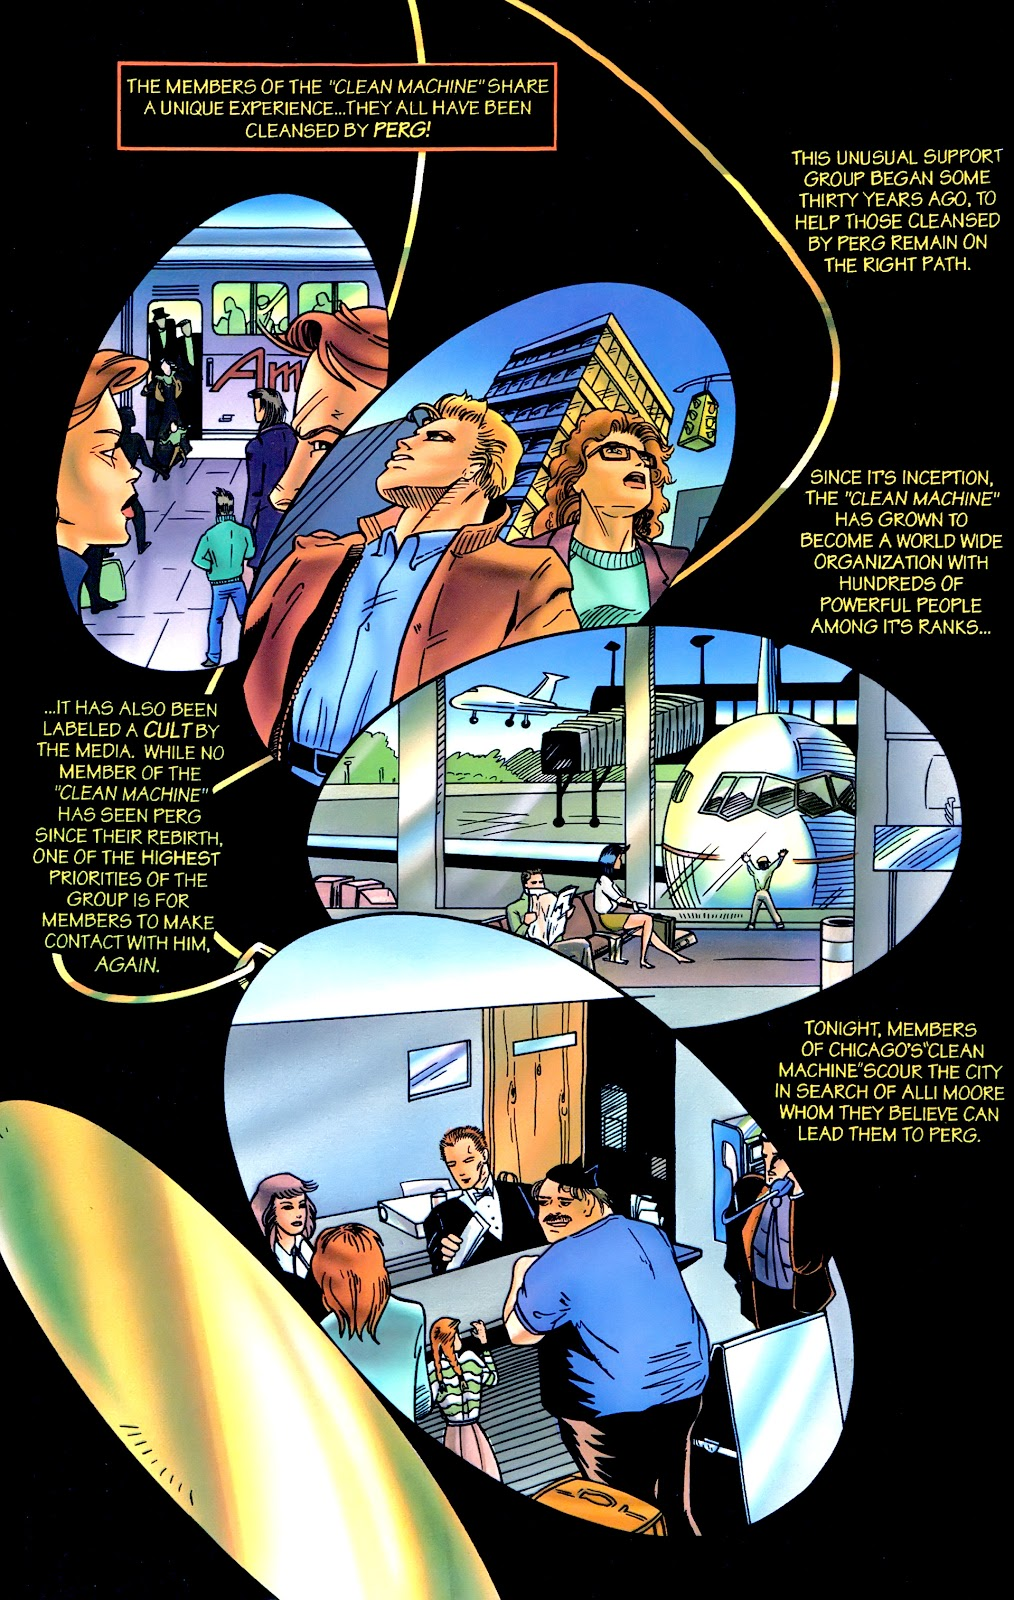 Read online Perg comic -  Issue #5 - 18